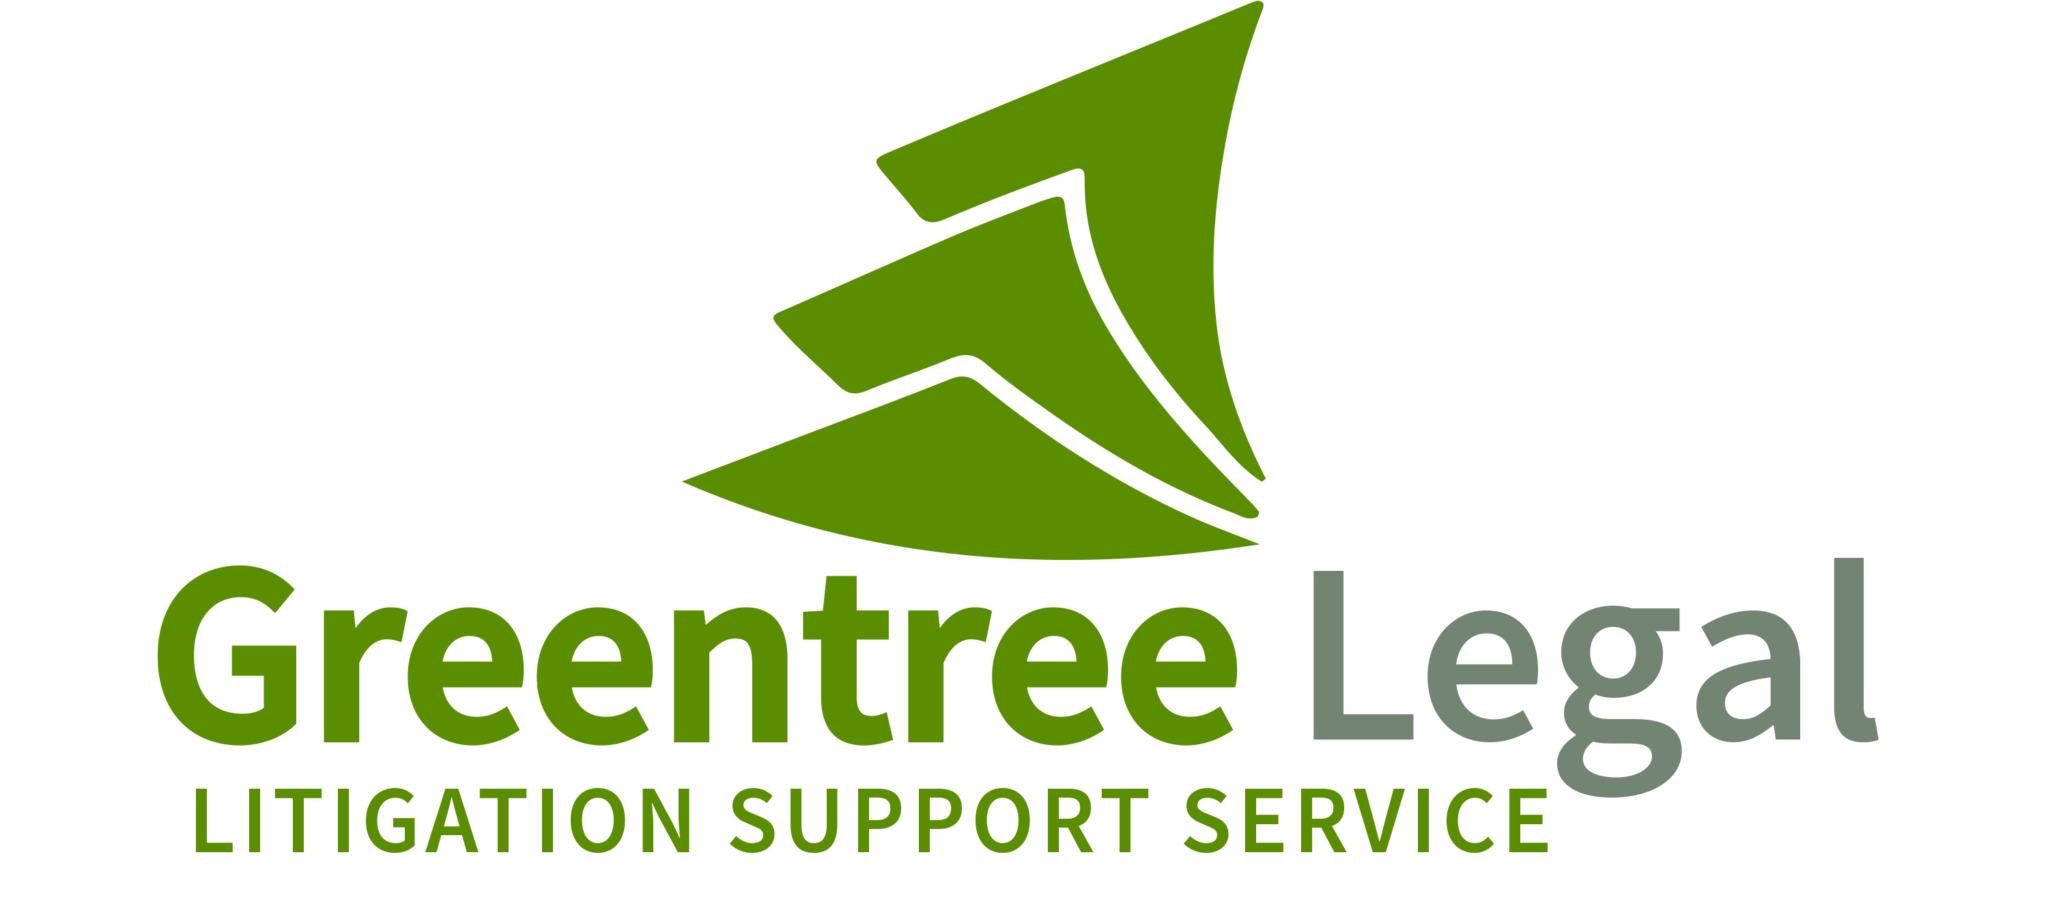 GREEN TREE LEGAL LOGO 1 - Process Service Order Placement